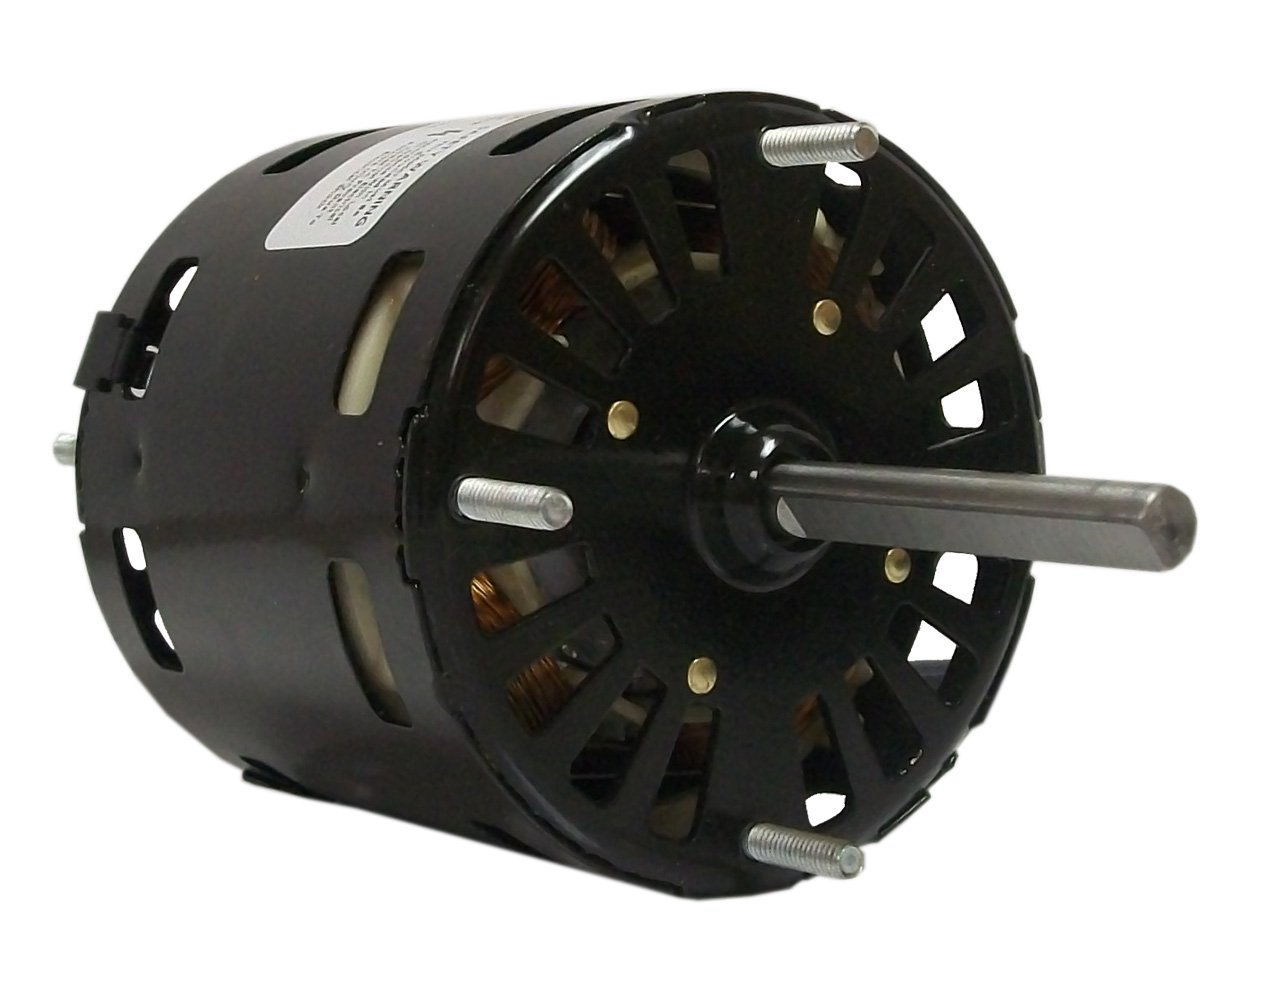 Fasco D1103 3.3-Inch Diameter Shaded Pole Motor, 1/20 HP, 208-230 Volts, 1500 RPM, 1 Speed, 1.15 Amps, CCW Rotation, Sleeve Bearing by Fasco